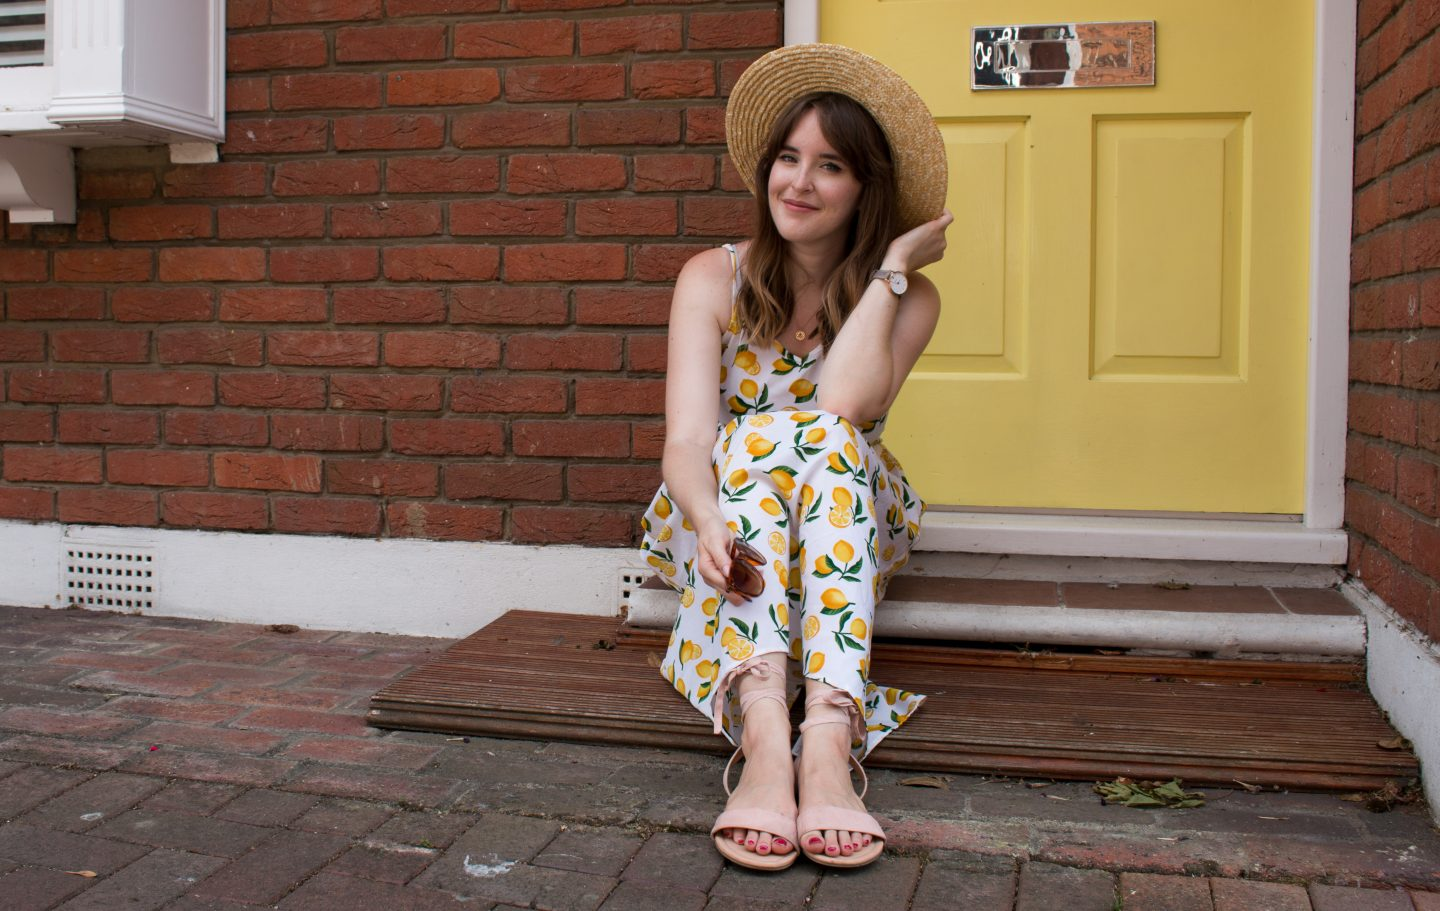 Lemon print dress and straw hat, both from ASOS